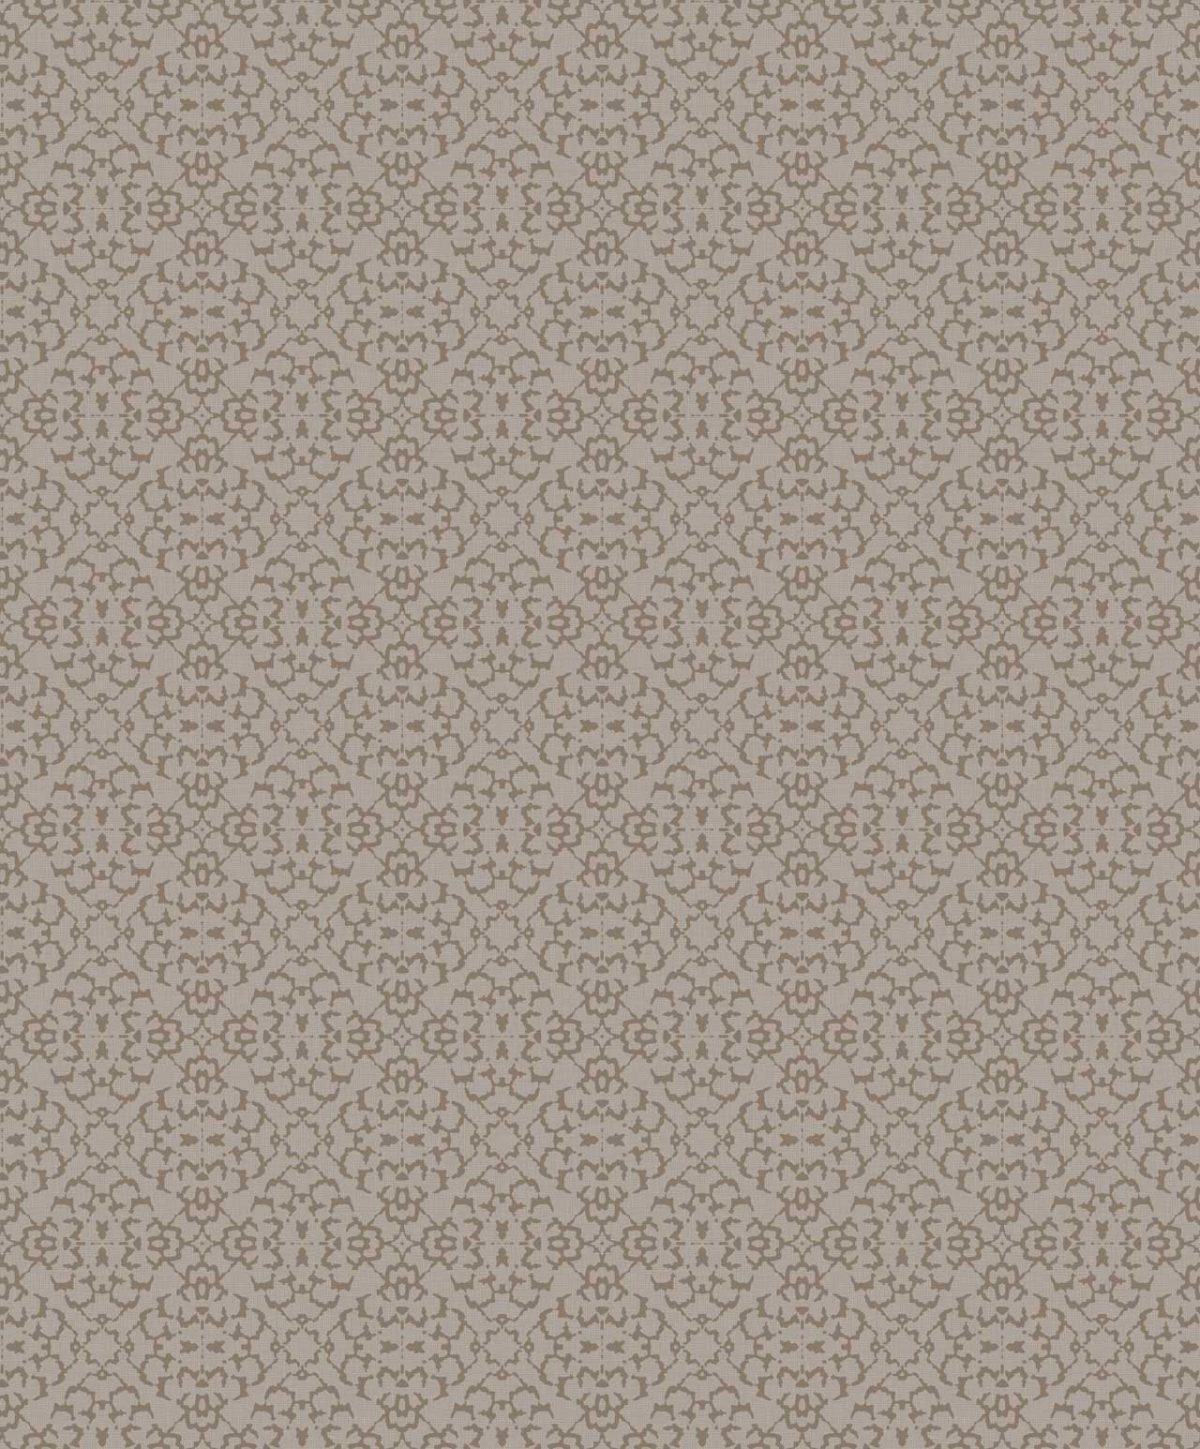 Sloan-Luxury-Wallpaper-SL00814-FABRIC-DIAMOND